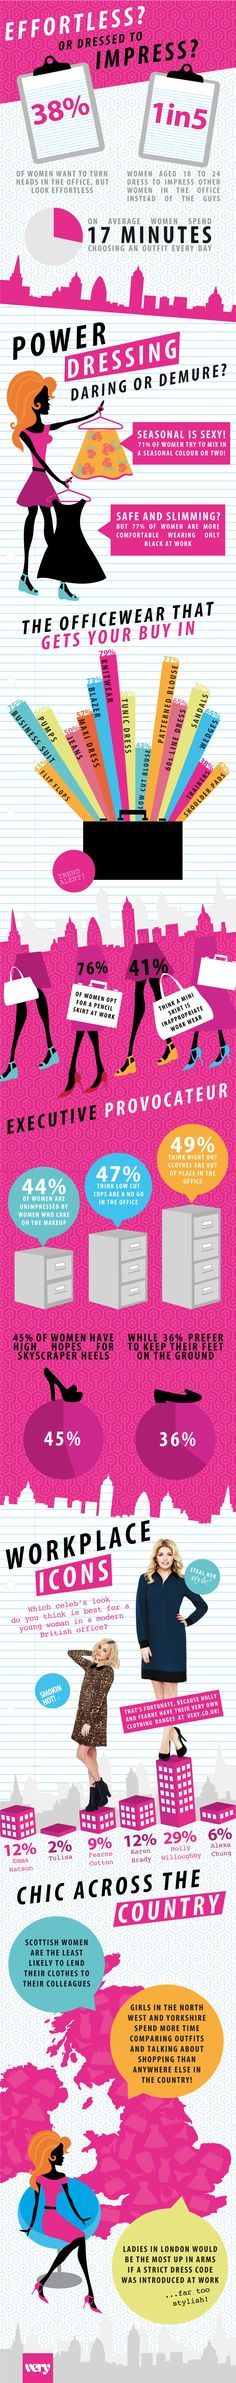 Office Fashion, by the Numbers [infographic]